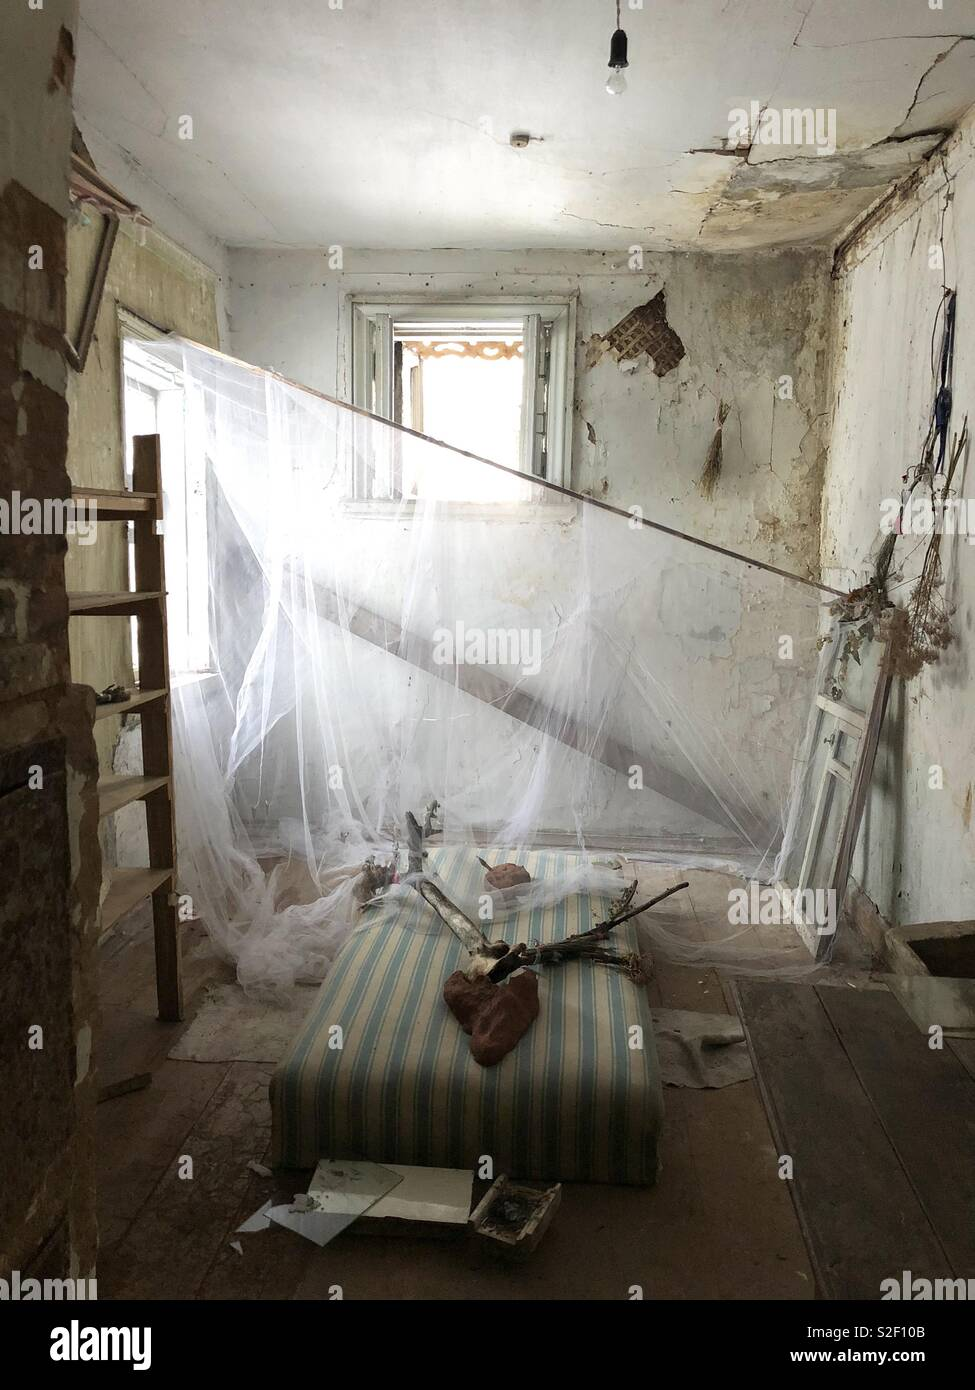 Creepy art installation in a dilapidated historical building Stock Photo